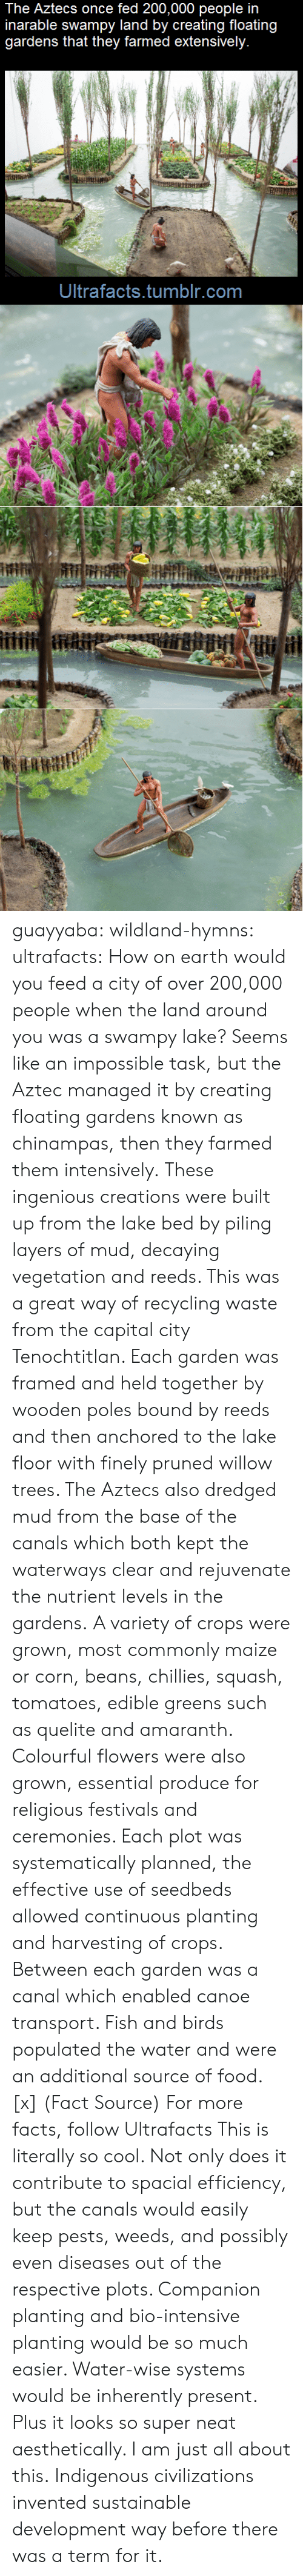 Inherently: The Aztecs once fed 200,000 people in  inarable swampy land by creating floating  gardens that they farmed extensively.  Ultrafacts.tumblr.com guayyaba: wildland-hymns:  ultrafacts:  How on earth would you feed a city of over 200,000 people when the land around you was a swampy lake? Seems like an impossible task, but the Aztec managed it by creating floating gardens known as chinampas, then they farmed them intensively. These ingenious creations were built up from the lake bed by piling layers of mud, decaying vegetation and reeds. This was a great way of recycling waste from the capital city Tenochtitlan. Each garden was framed and held together by wooden poles bound by reeds and then anchored to the lake floor with finely pruned willow trees. The Aztecs also dredged mud from the base of the canals which both kept the waterways clear and rejuvenate the nutrient levels in the gardens. A variety of crops were grown, most commonly maize or corn, beans, chillies, squash, tomatoes, edible greens such as quelite and amaranth. Colourful flowers were also grown, essential produce for religious festivals and ceremonies. Each plot was systematically planned, the effective use of seedbeds allowed continuous planting and harvesting of crops. Between each garden was a canal which enabled canoe transport. Fish and birds populated the water and were an additional source of food. [x] (Fact Source) For more facts, follow Ultrafacts   This is literally so cool. Not only does it contribute to spacial efficiency, but the canals would easily keep pests, weeds, and possibly even diseases out of the respective plots. Companion planting and bio-intensive planting would be so much easier. Water-wise systems would be inherently present. Plus it looks so super neat aesthetically. I am just all about this.   Indigenous civilizations invented sustainable development way before there was a term for it.